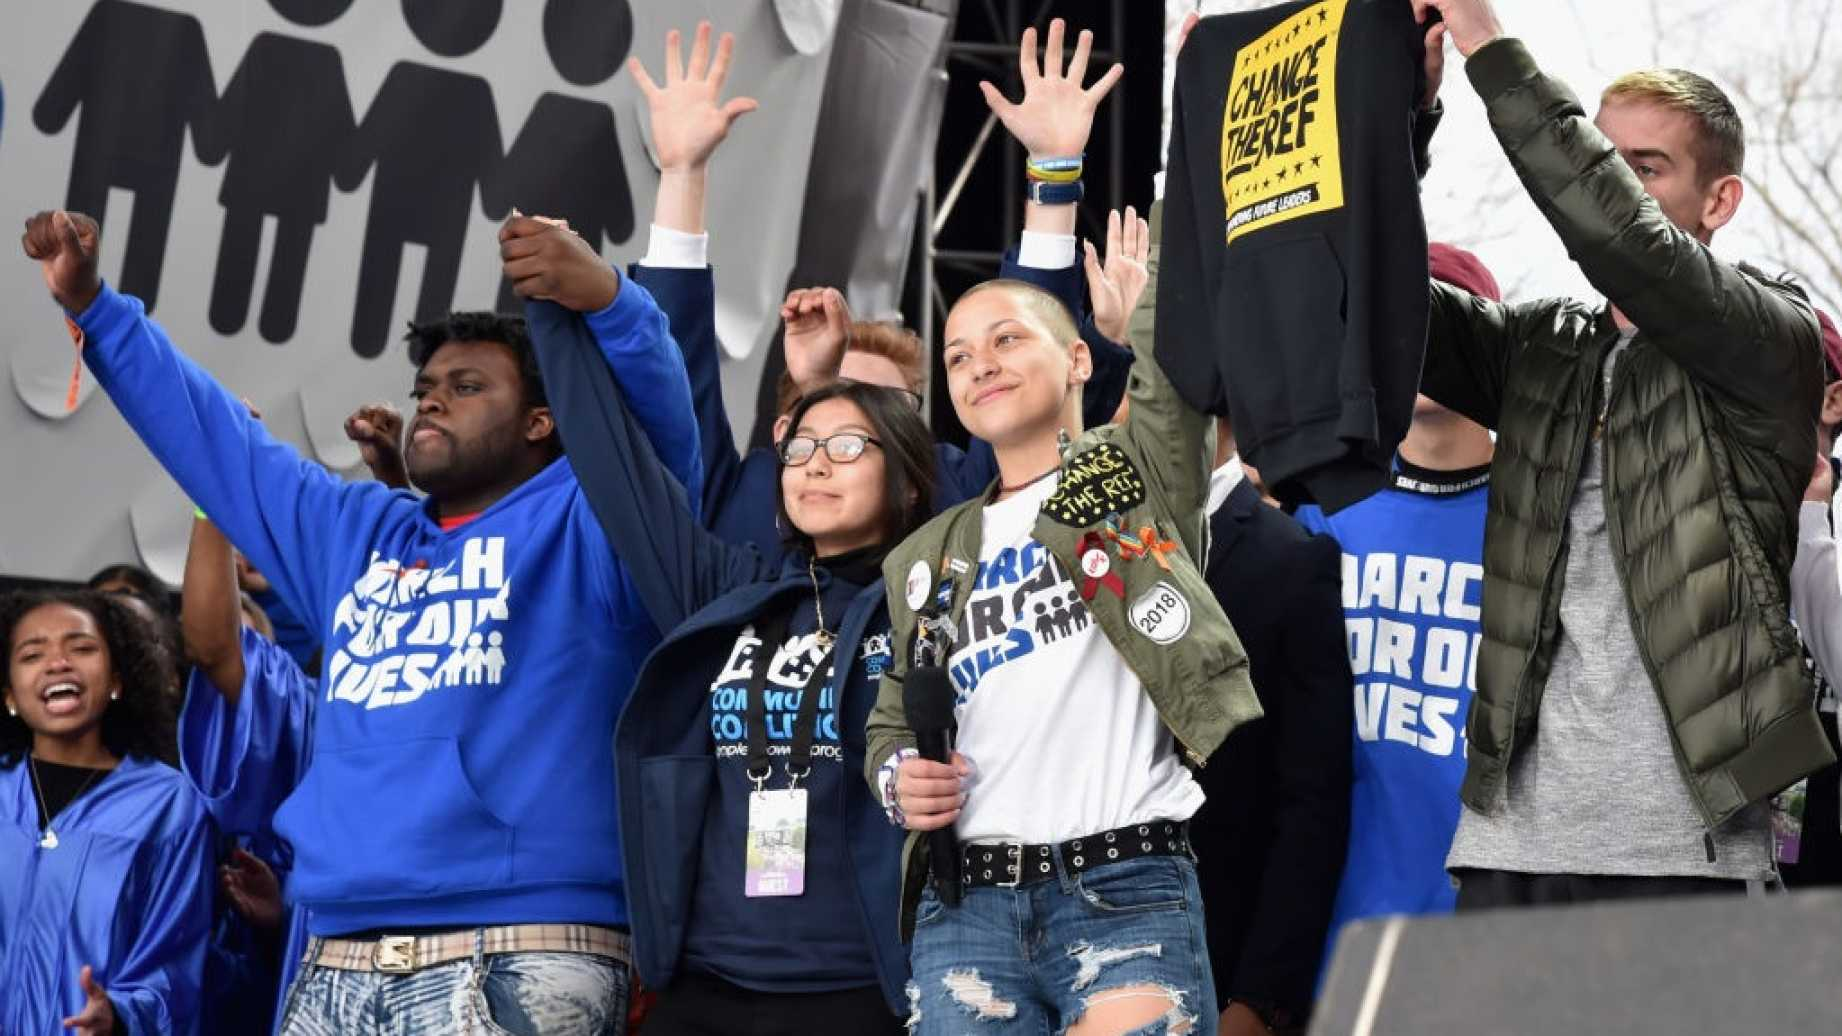 Most Of The March For Our Lives Protesters Werent Young  And Most Werent Motivated By Gun Control